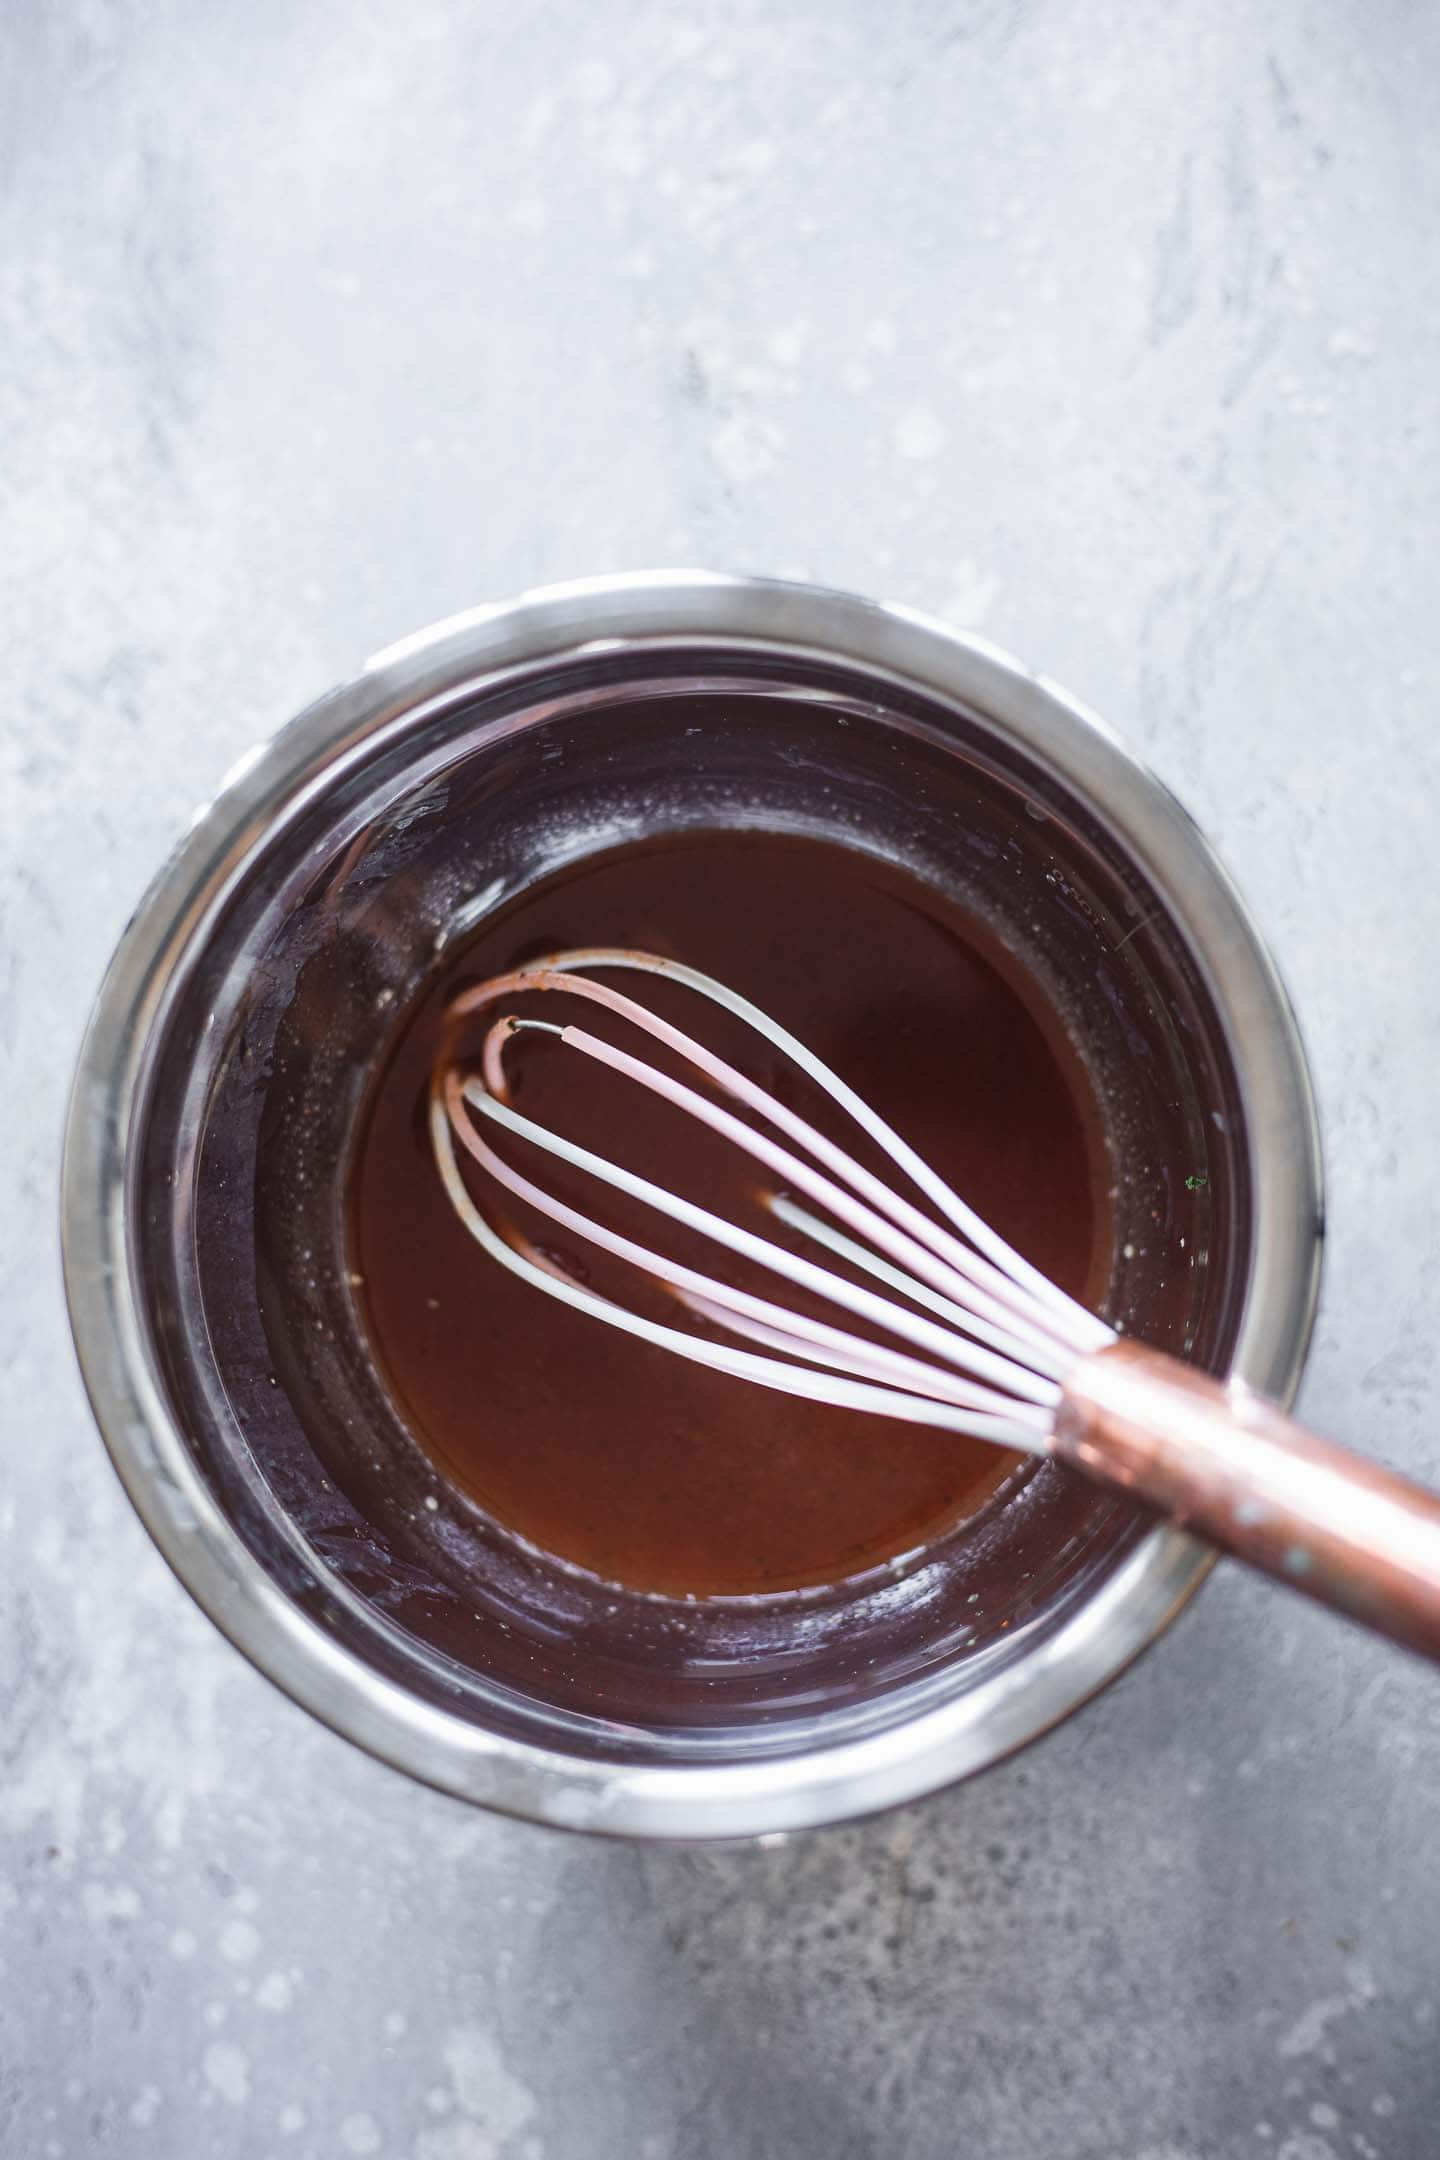 Sweet and sour sauce in a mixing bowl